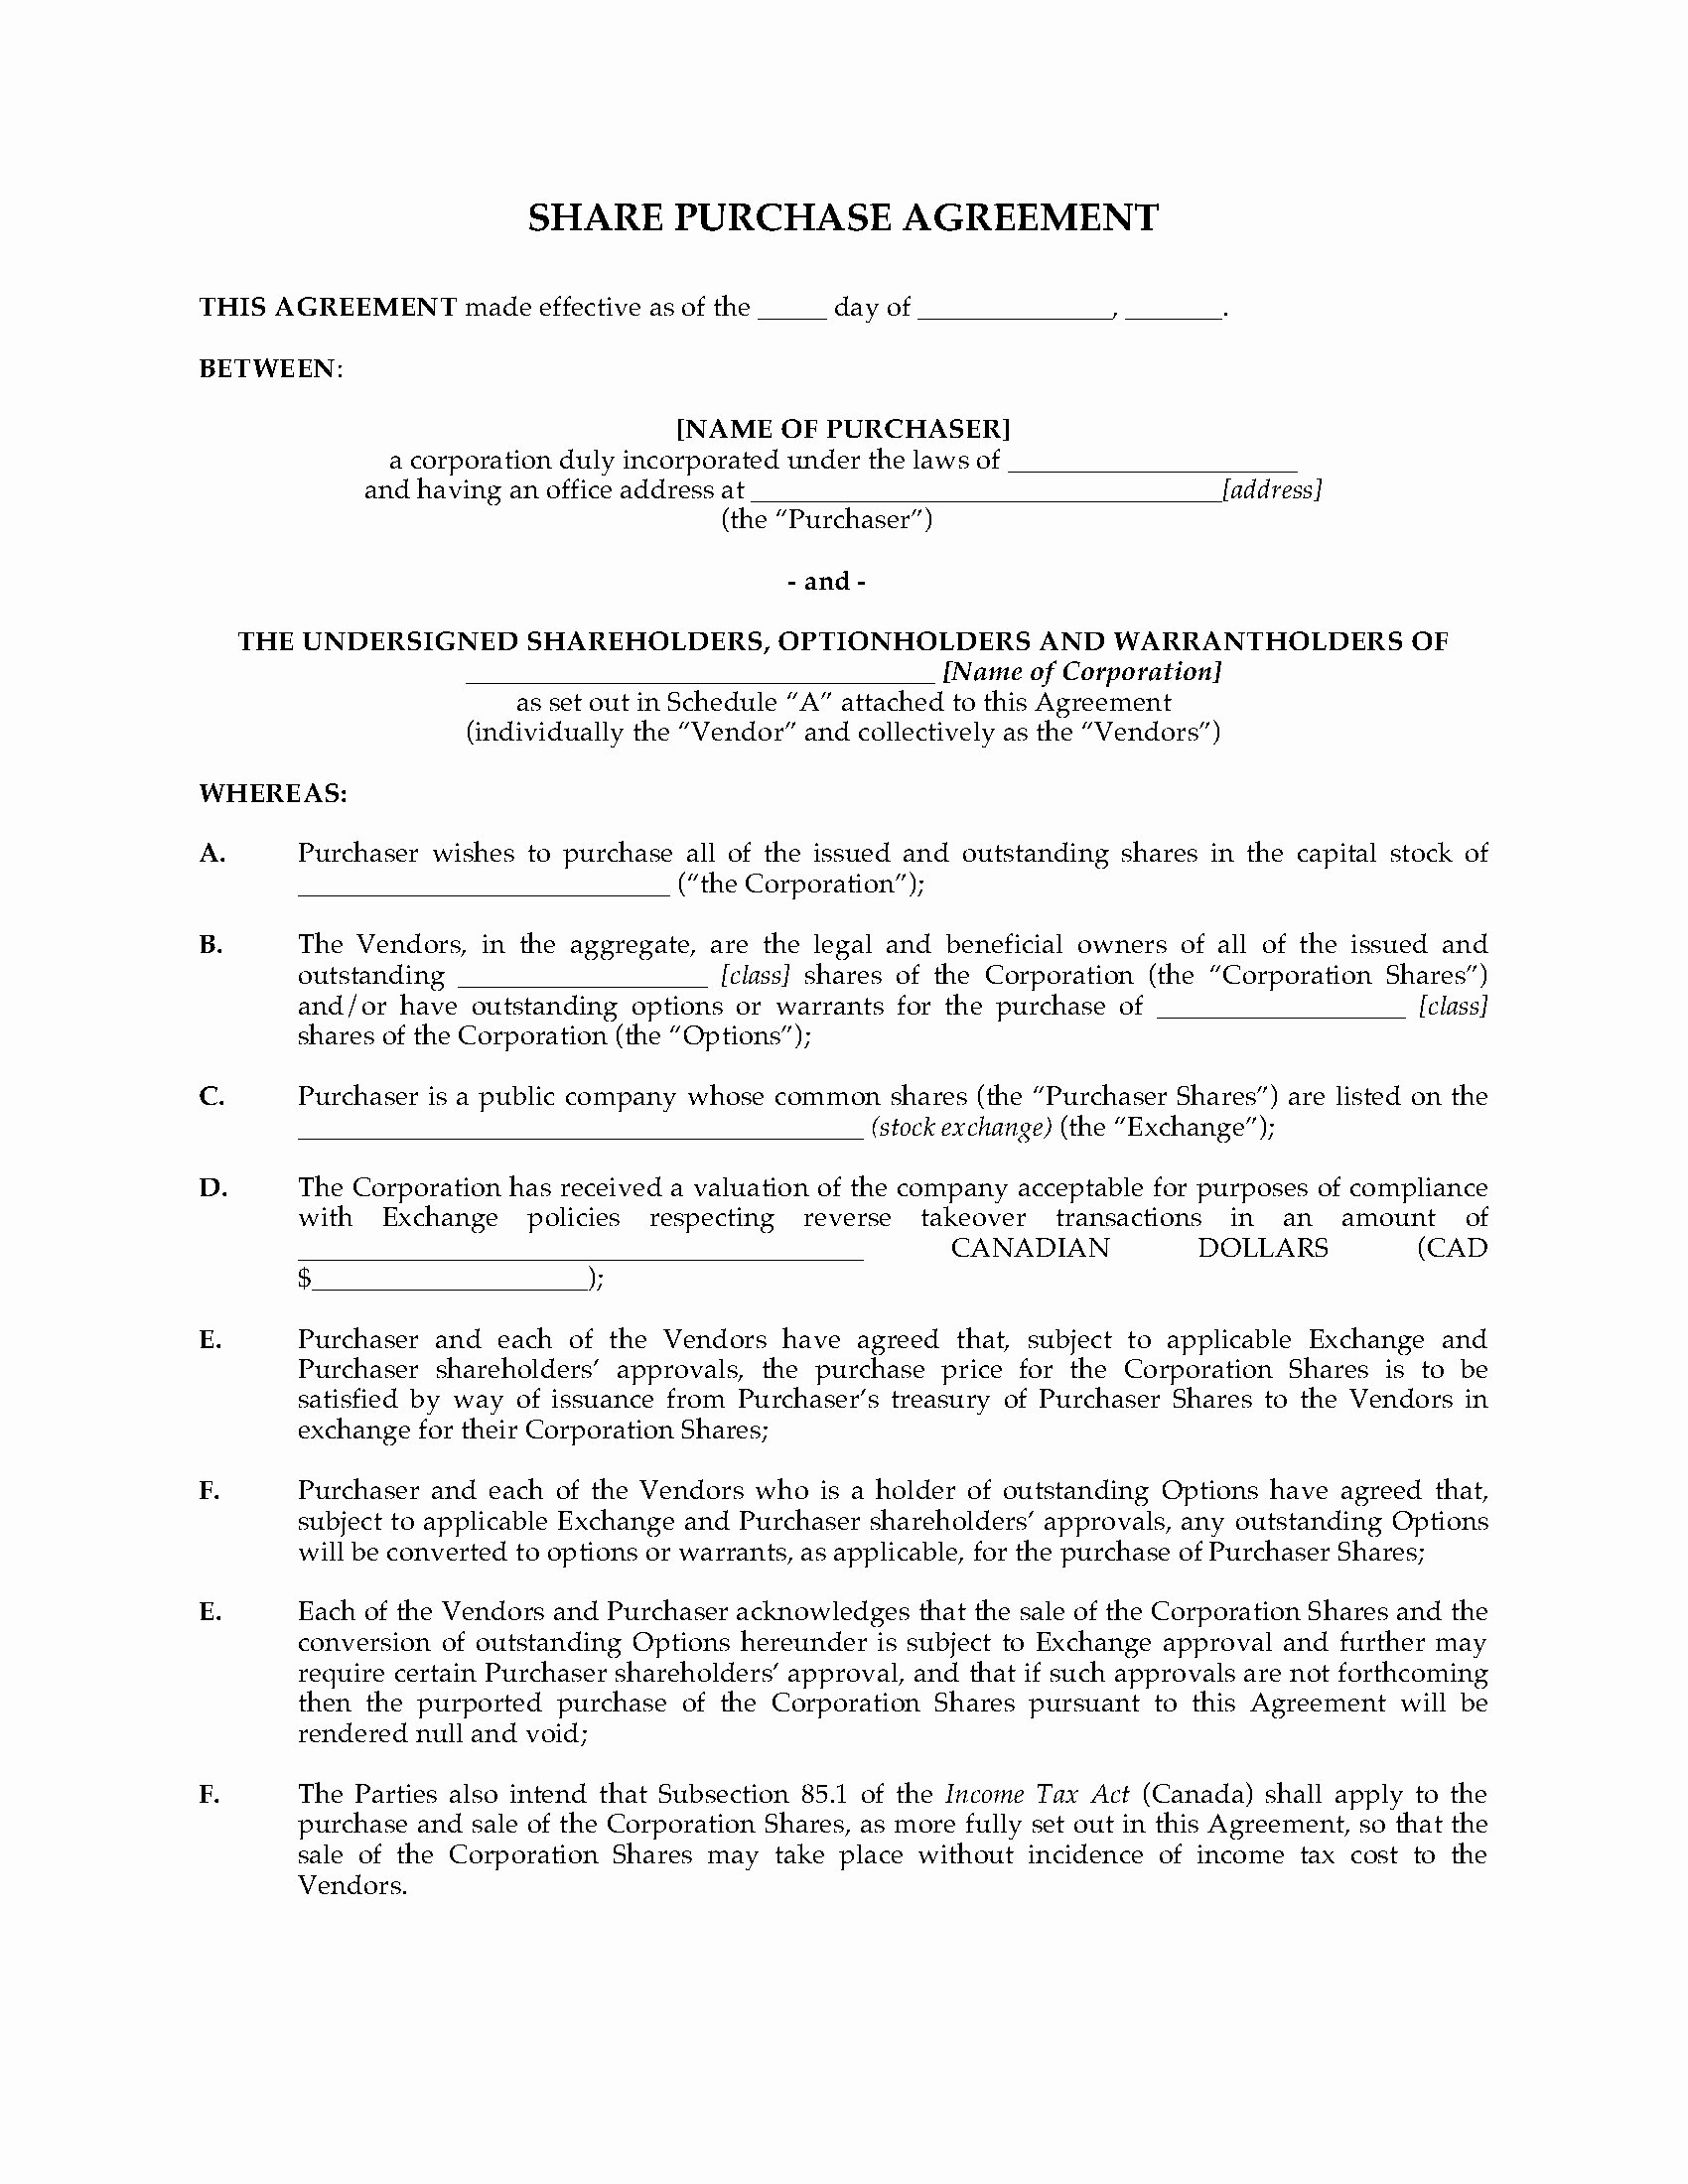 Share Purchase Agreement Template Inspirational Alberta Purchase Agreement for Reverse Takeover